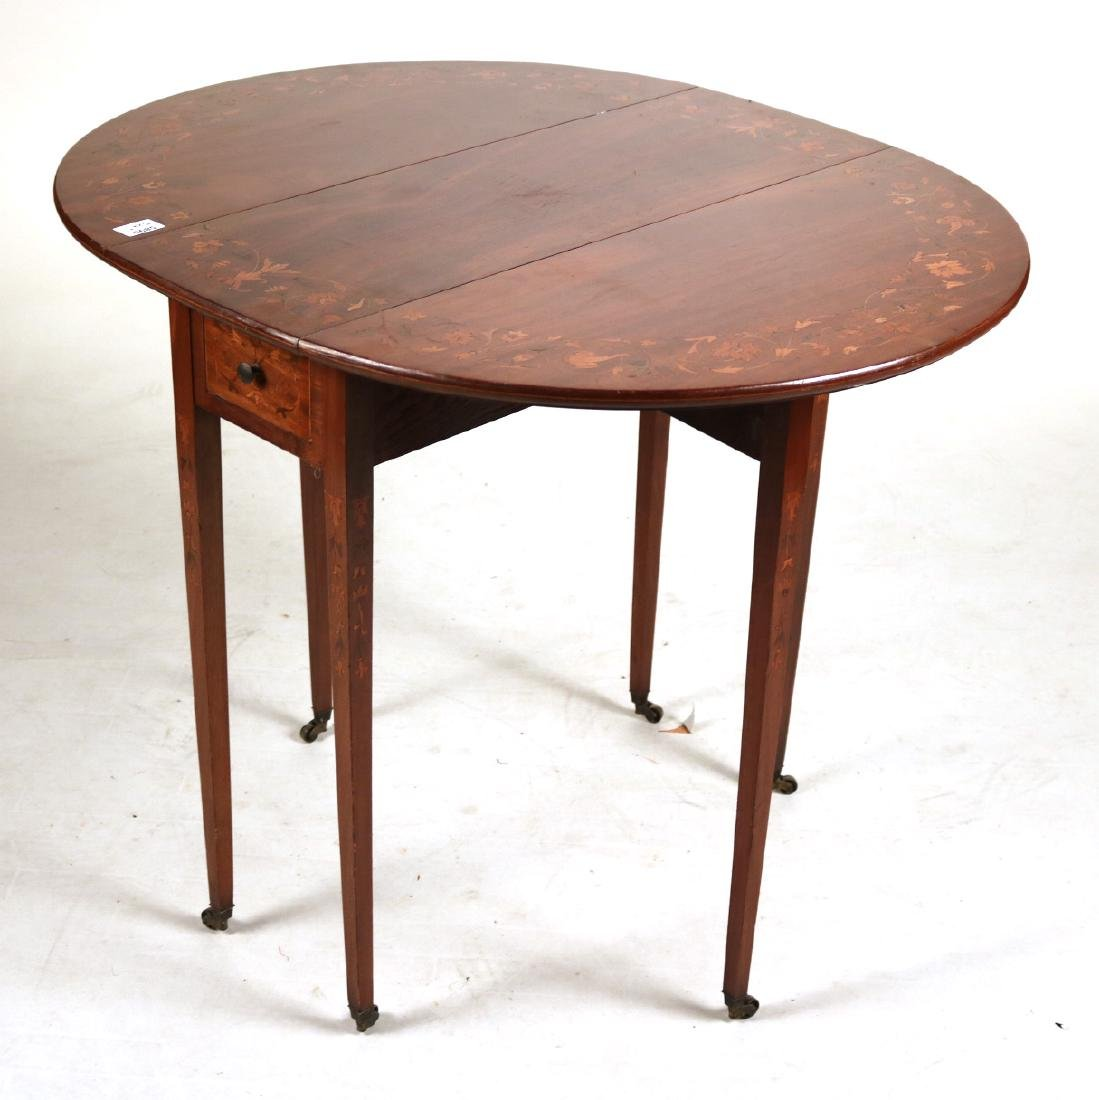 Neoclassical Style Mahogany Drop-Leaf Table - 2